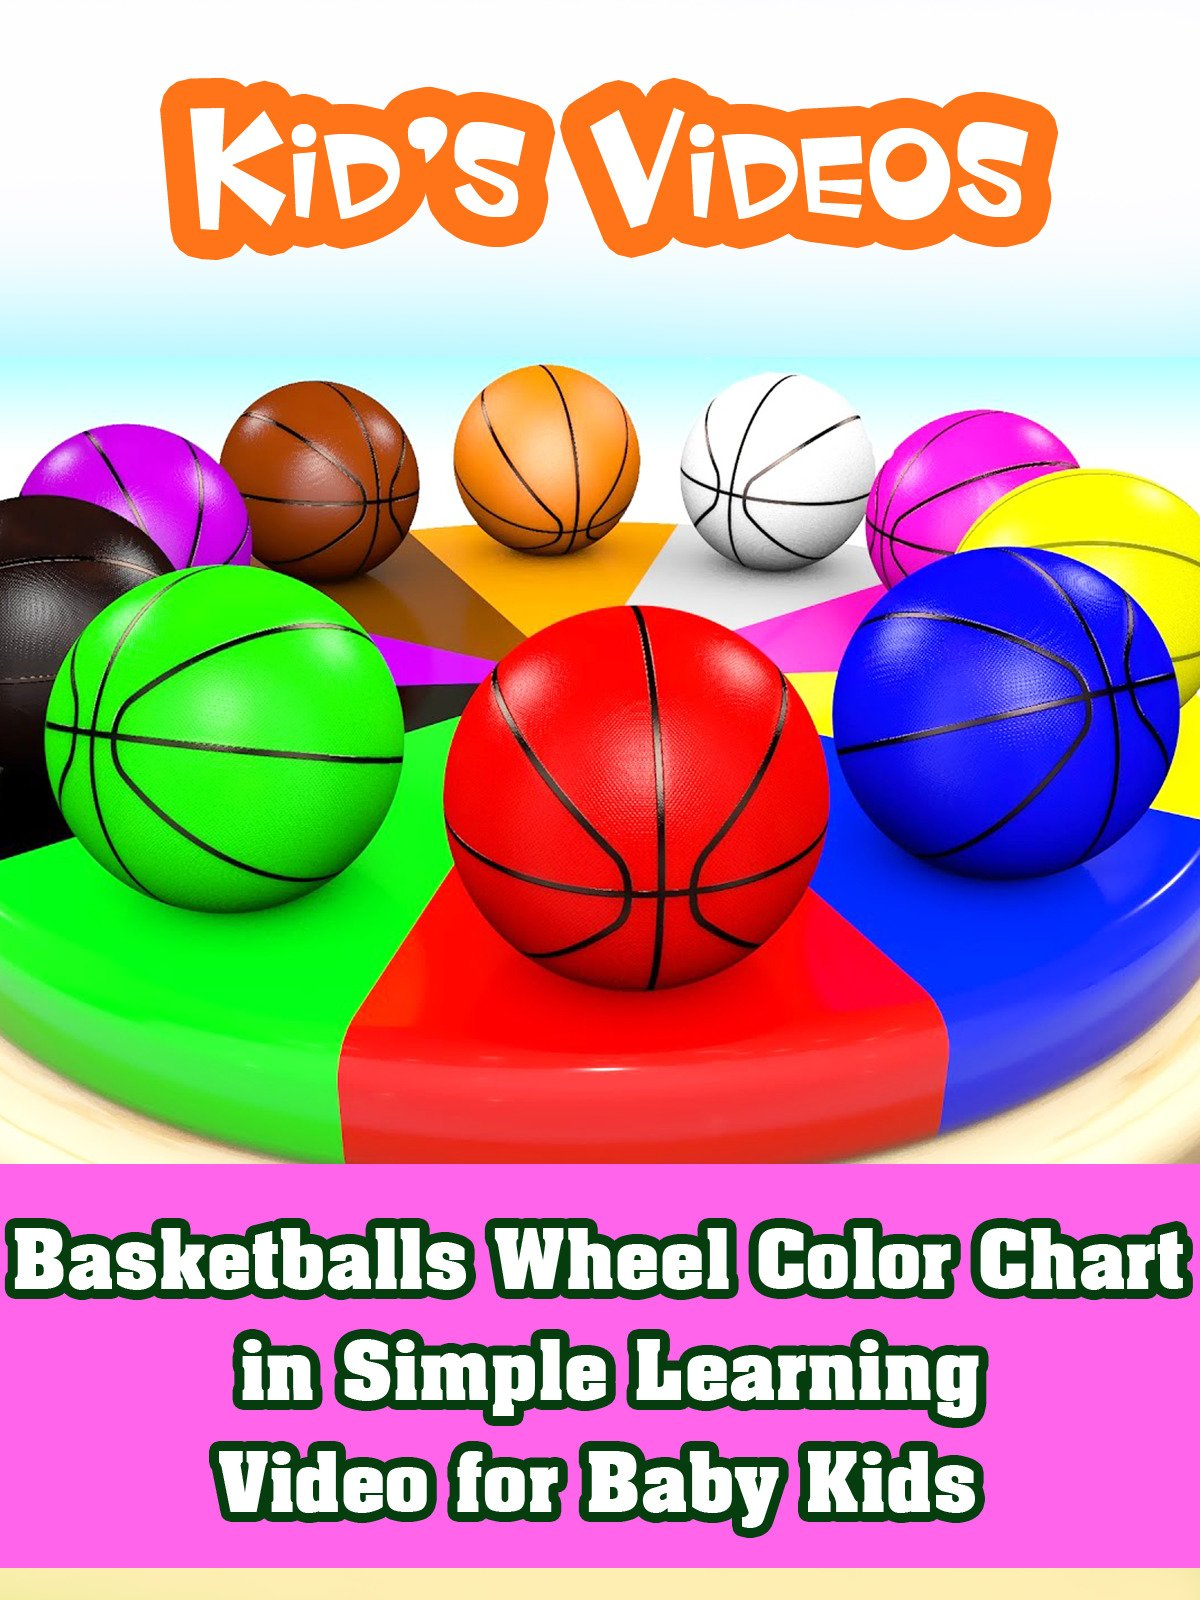 Basketballs Wheel Color Chart in Simple Learning Video for Baby Kids